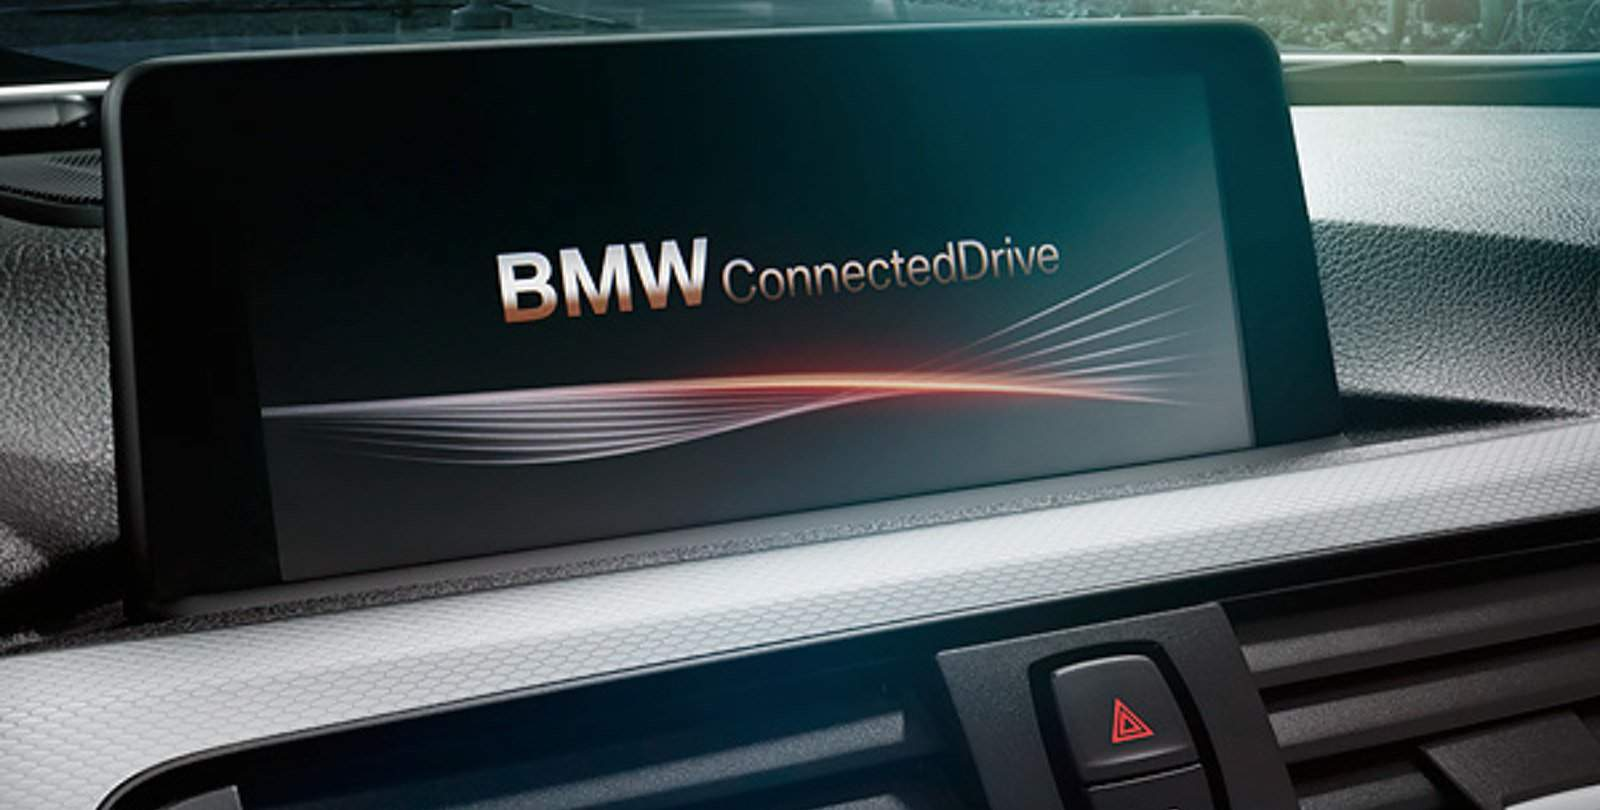 BMW ConnectedDrive is Now Available in South Africa